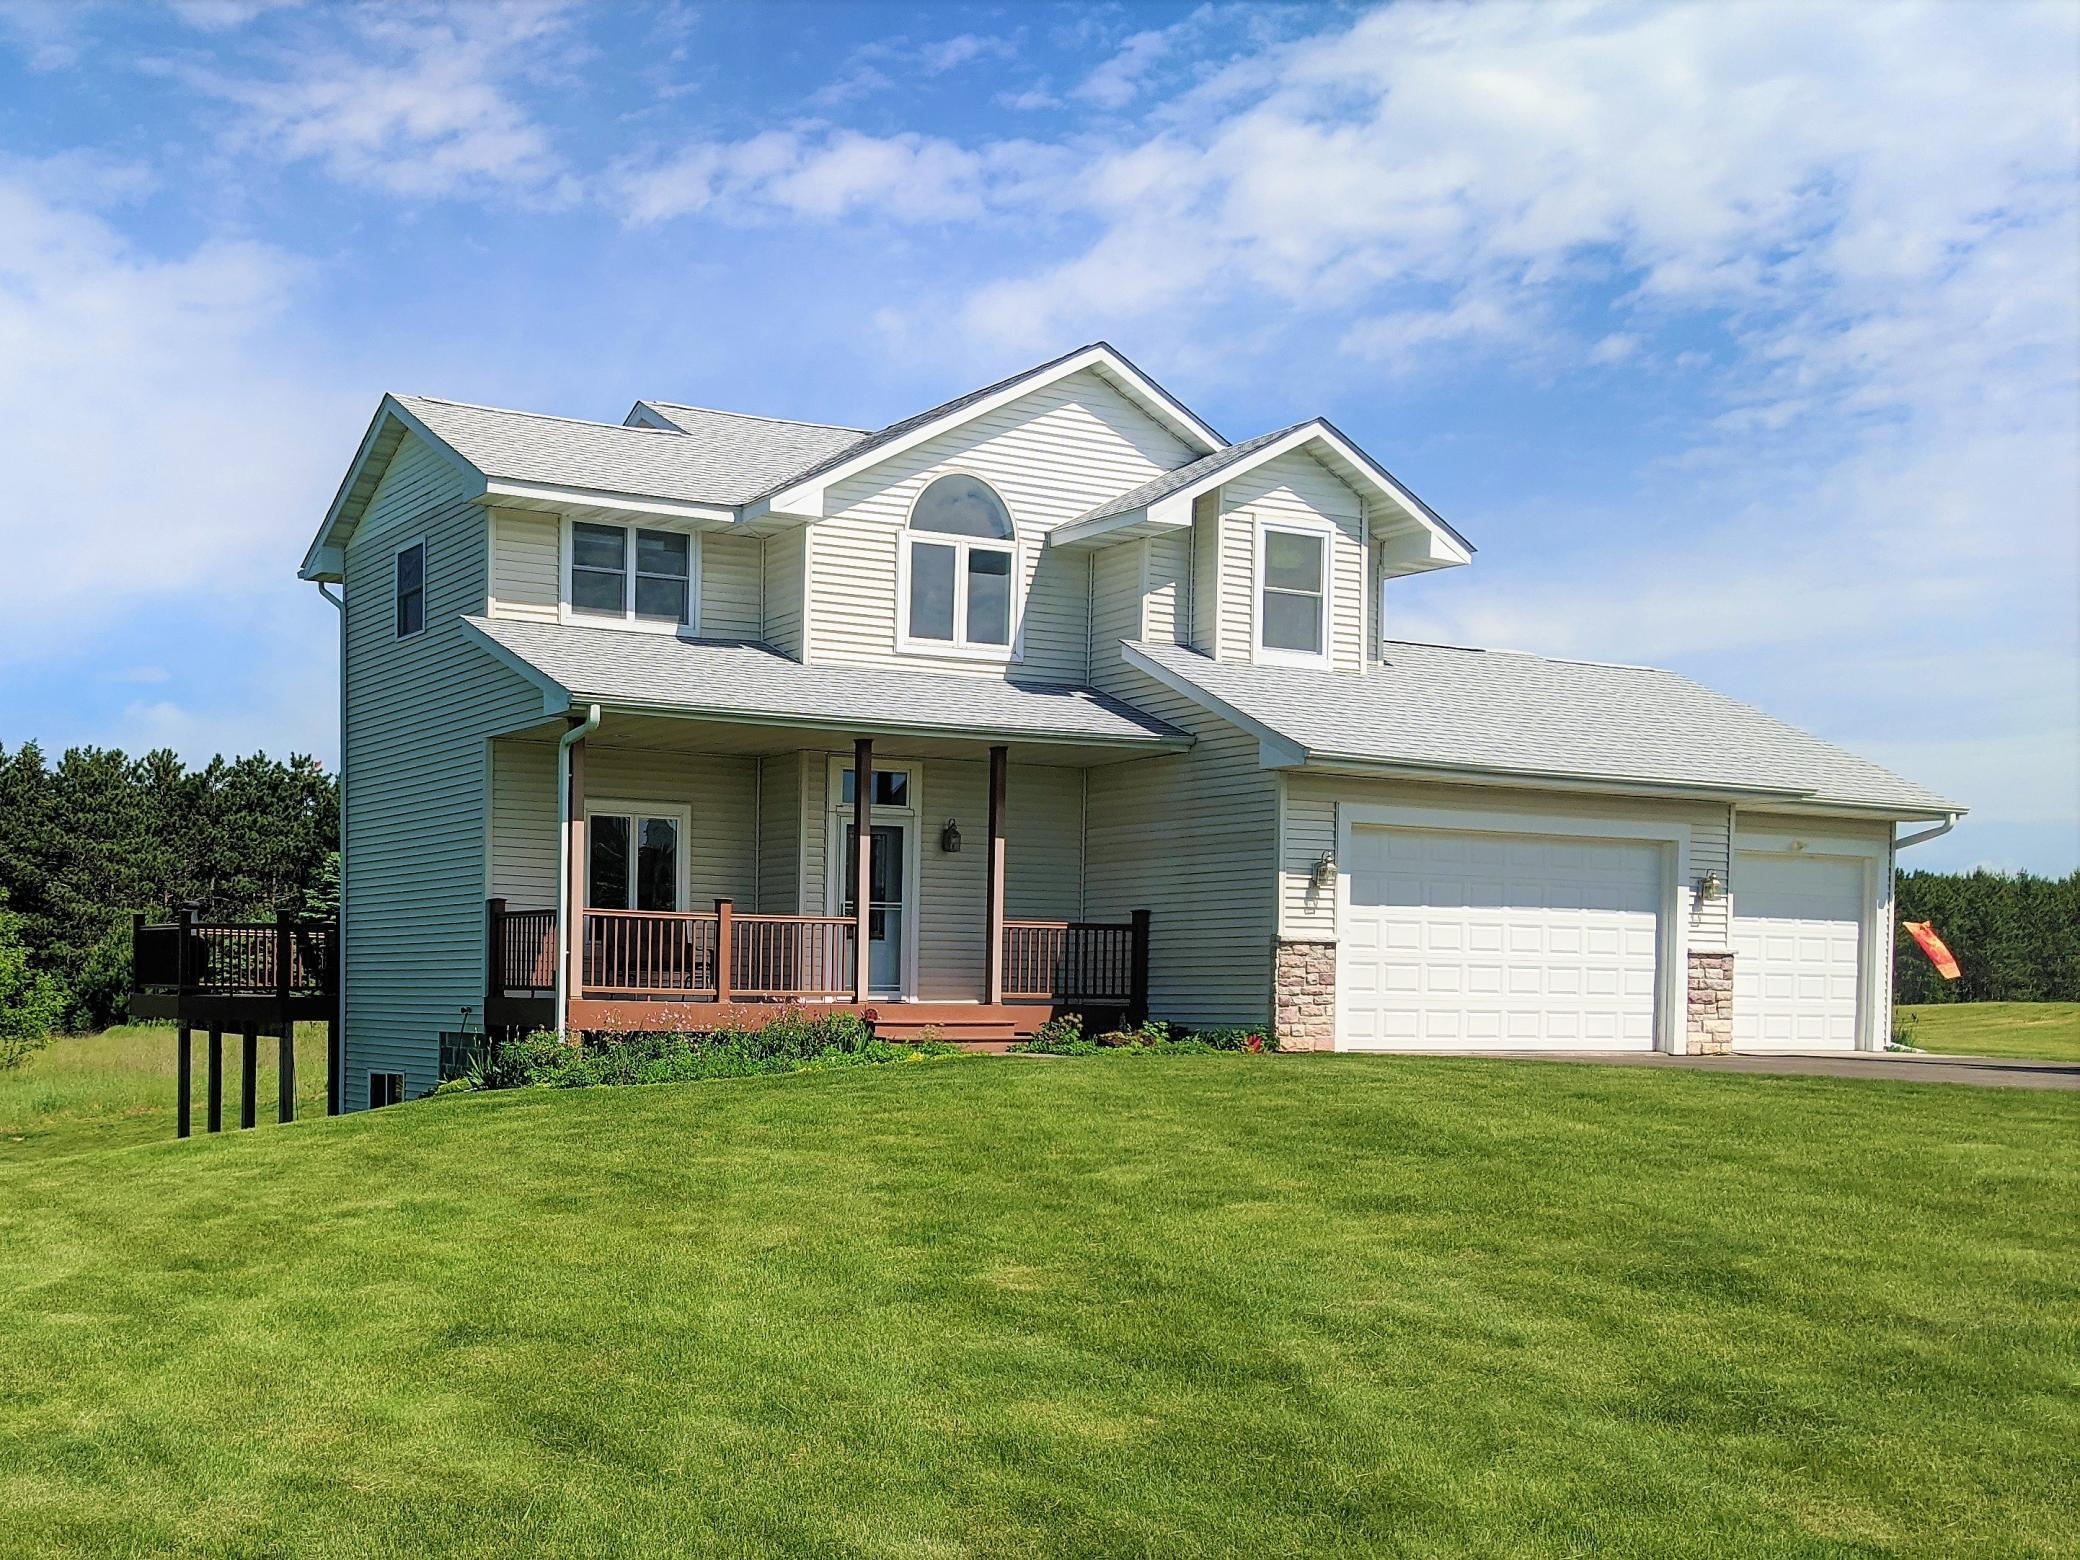 2123 62nd Property Photo - Somerset Twp, WI real estate listing